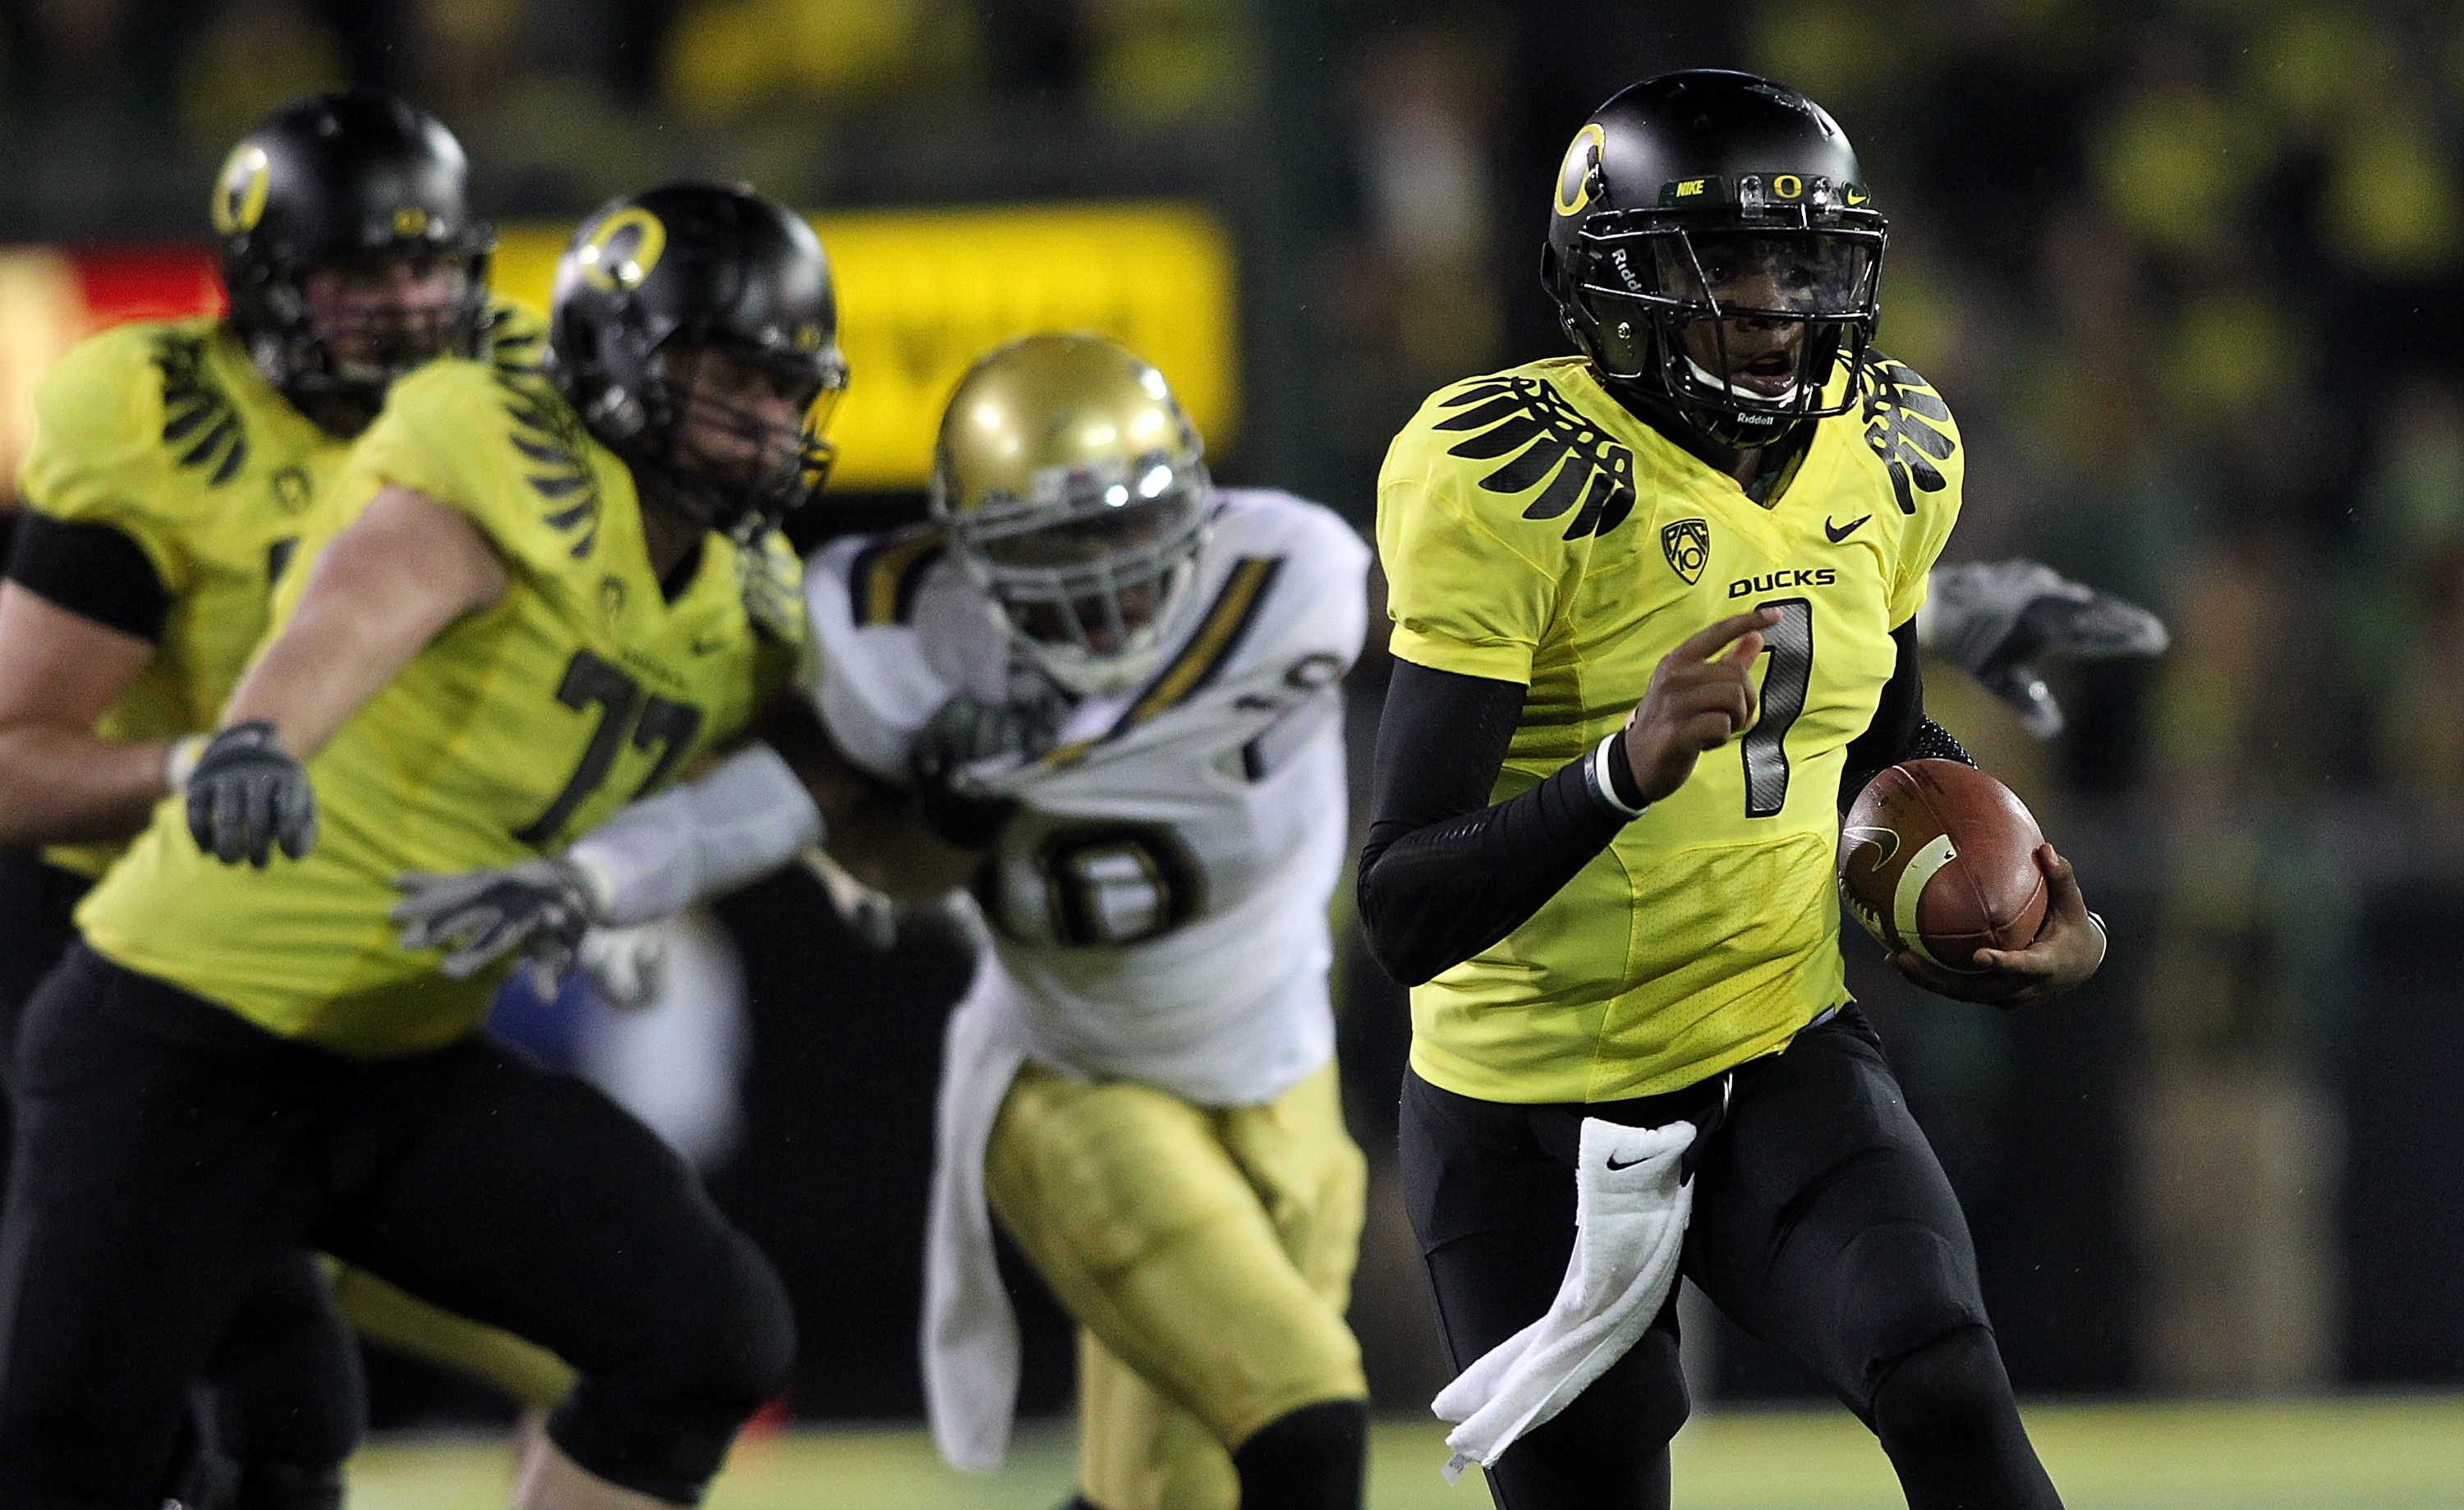 EUGENE, OR - OCTOBER 21:  Darron Thomas #1 of the Oregon Ducks runs against  the UCLA Bruins  on October 21, 2010 at the Autzen Stadium in Eugene, Oregon.  (Photo by Jonathan Ferrey/Getty Images)